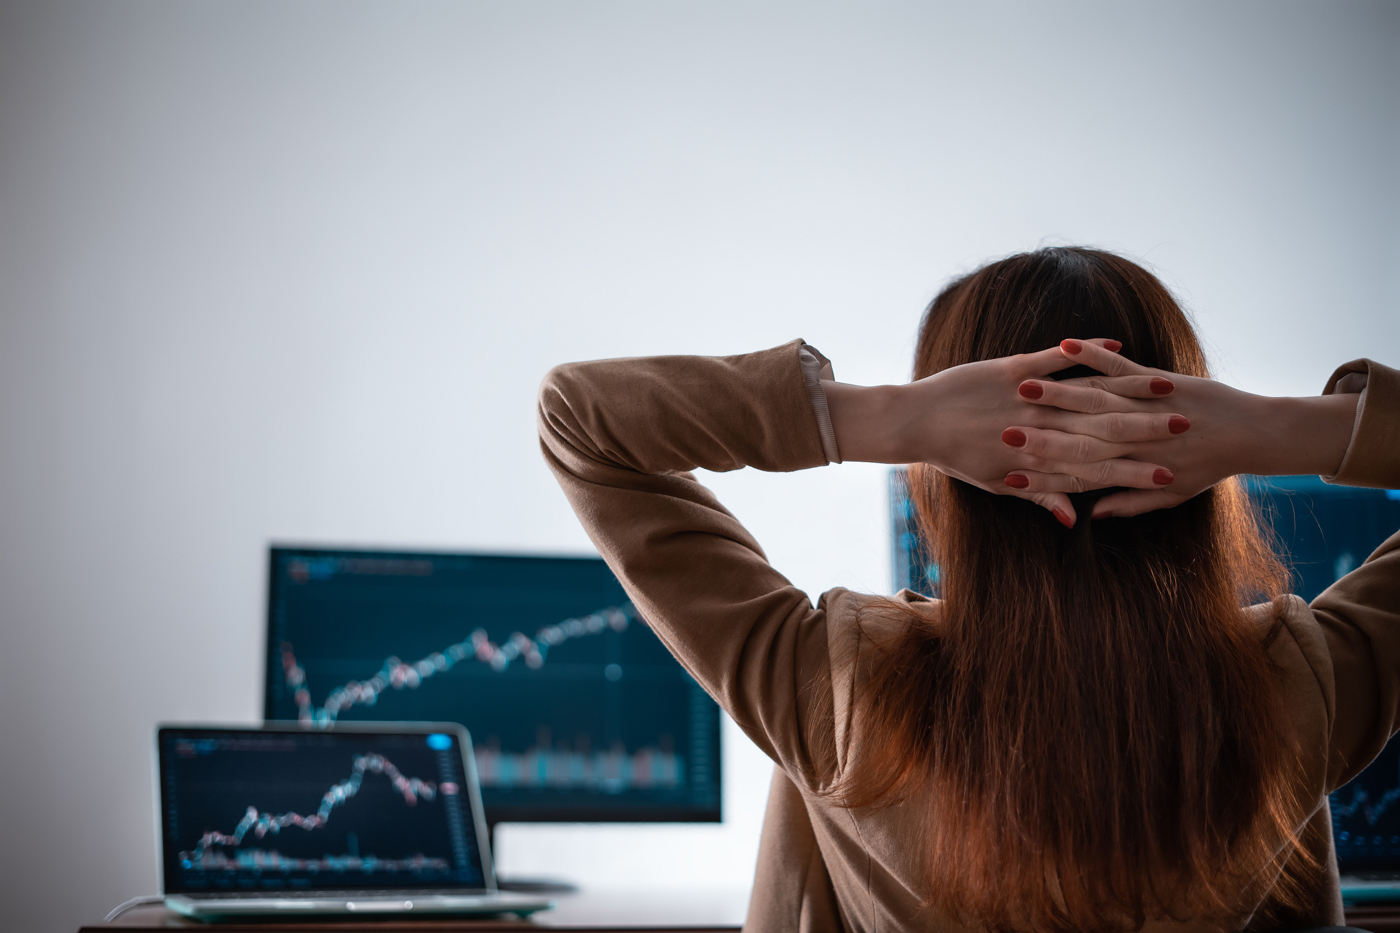 Traders watch the price movements on the stock exchanges